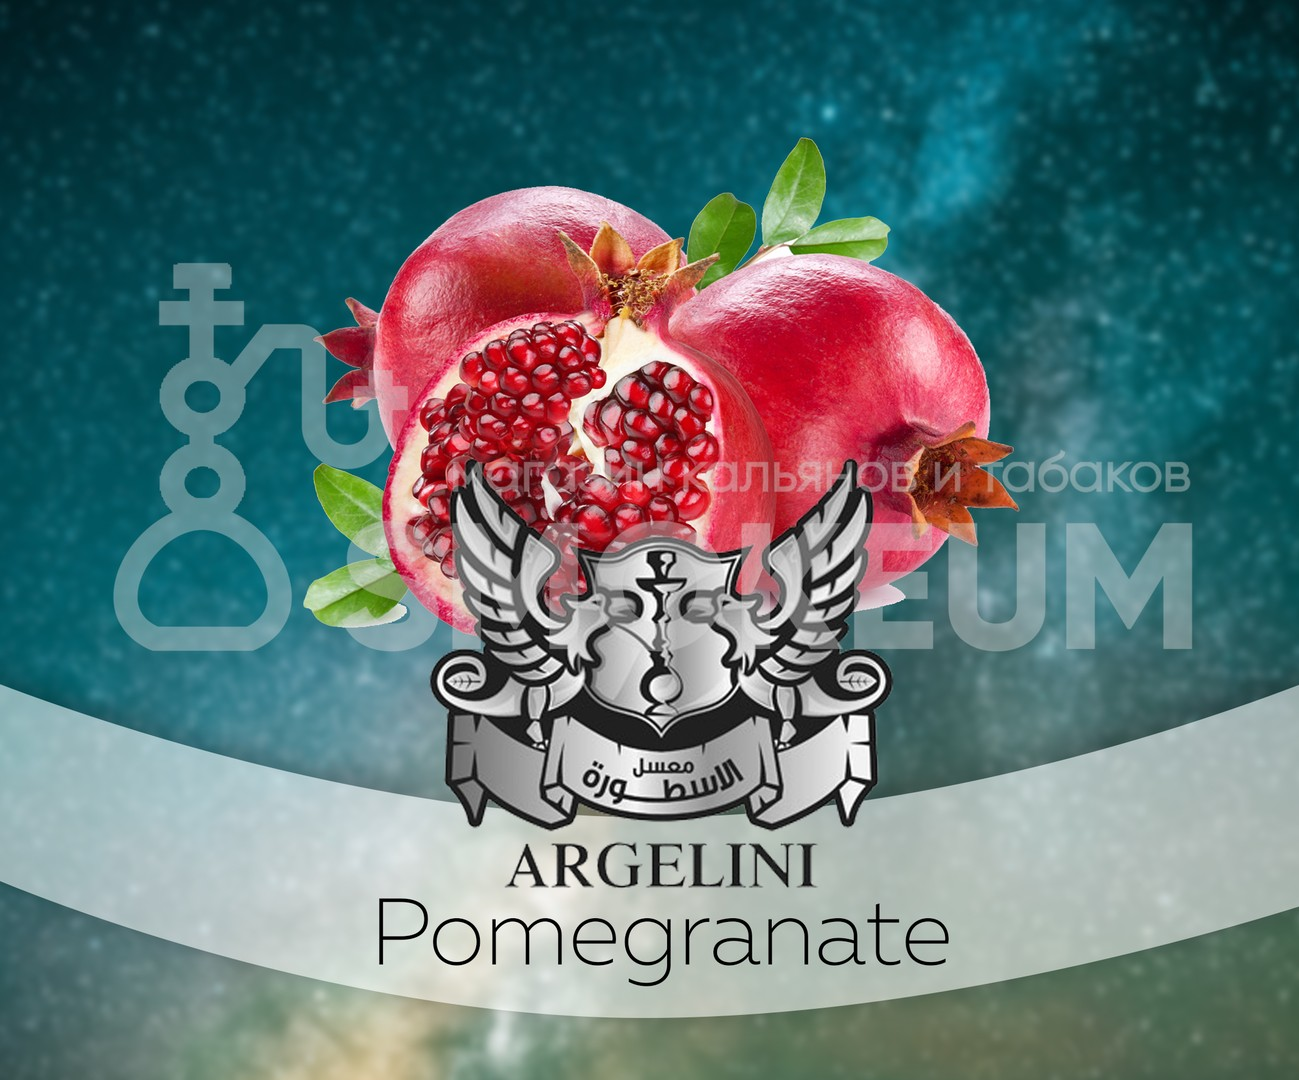 Табак Argelini - Pomegranate (Гранат) 50 гр